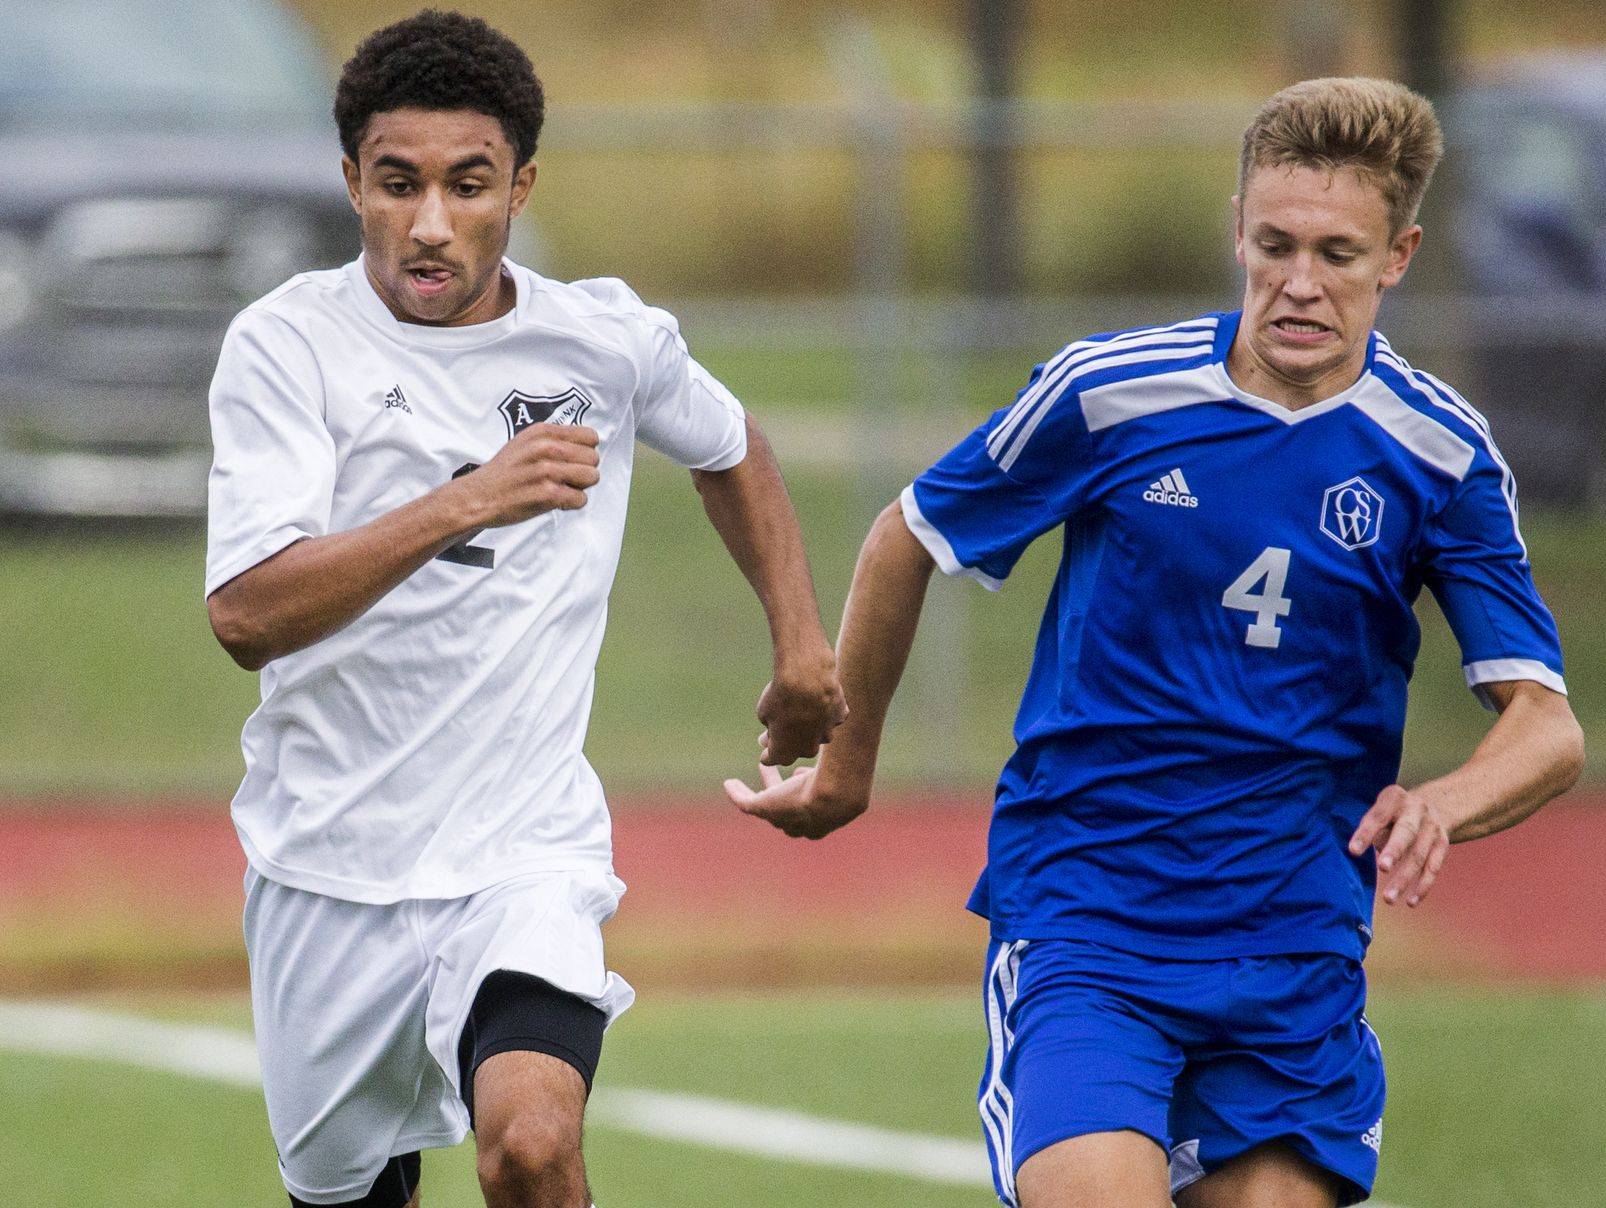 Appoquinimink's Derek Fisher (left) chases the ball down the sideline with Charter's Jacob Ogrodnik (right) in the second half of Appoquinimink's 1-0 win over Charter School of Wilmington at Appoquinimink High School in Middletown on Tuesday afternoon.